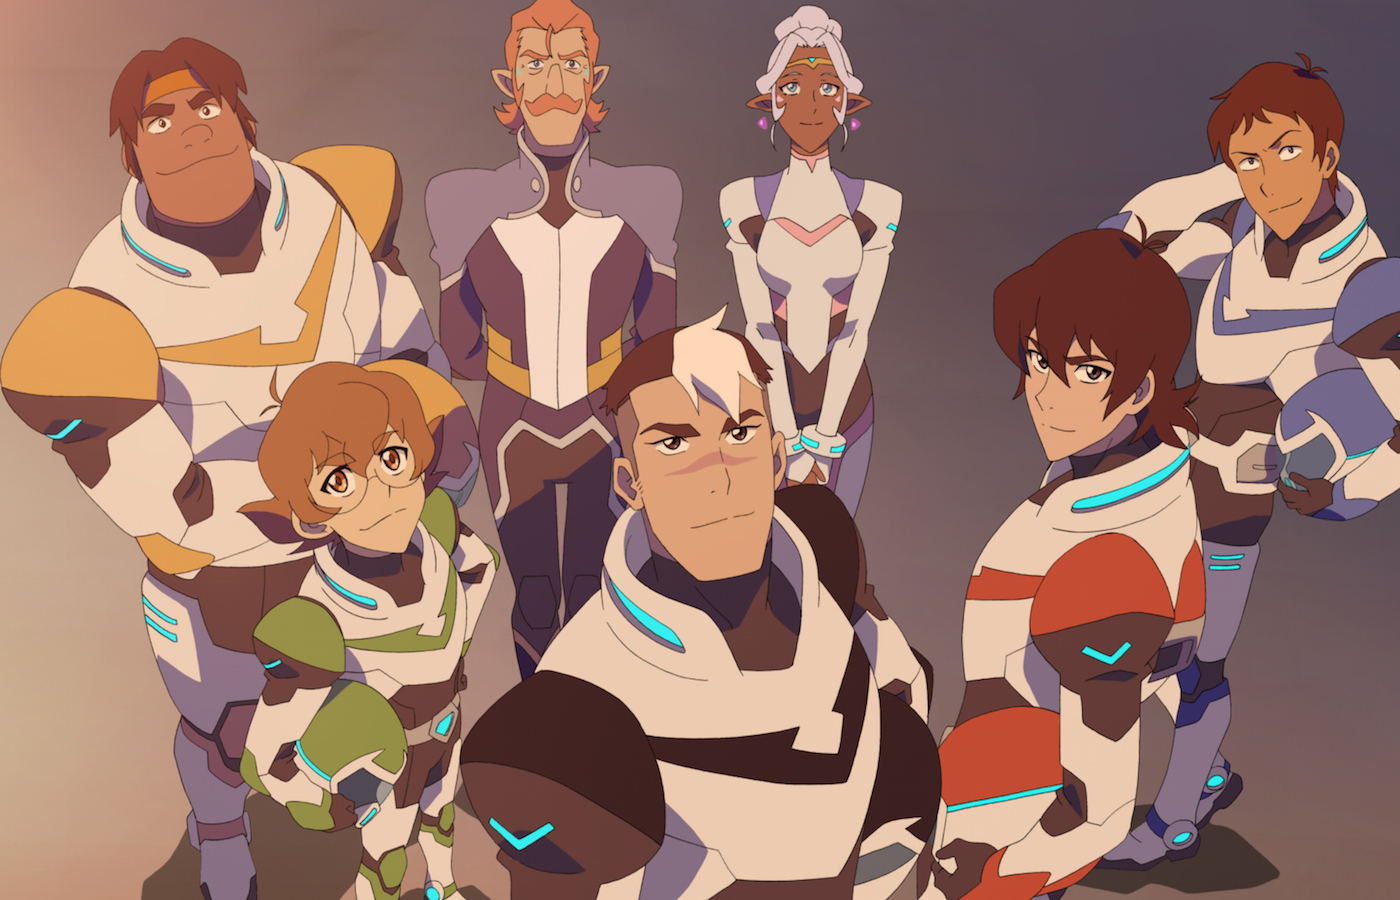 voltron-legendary-defender-team-image.jpg